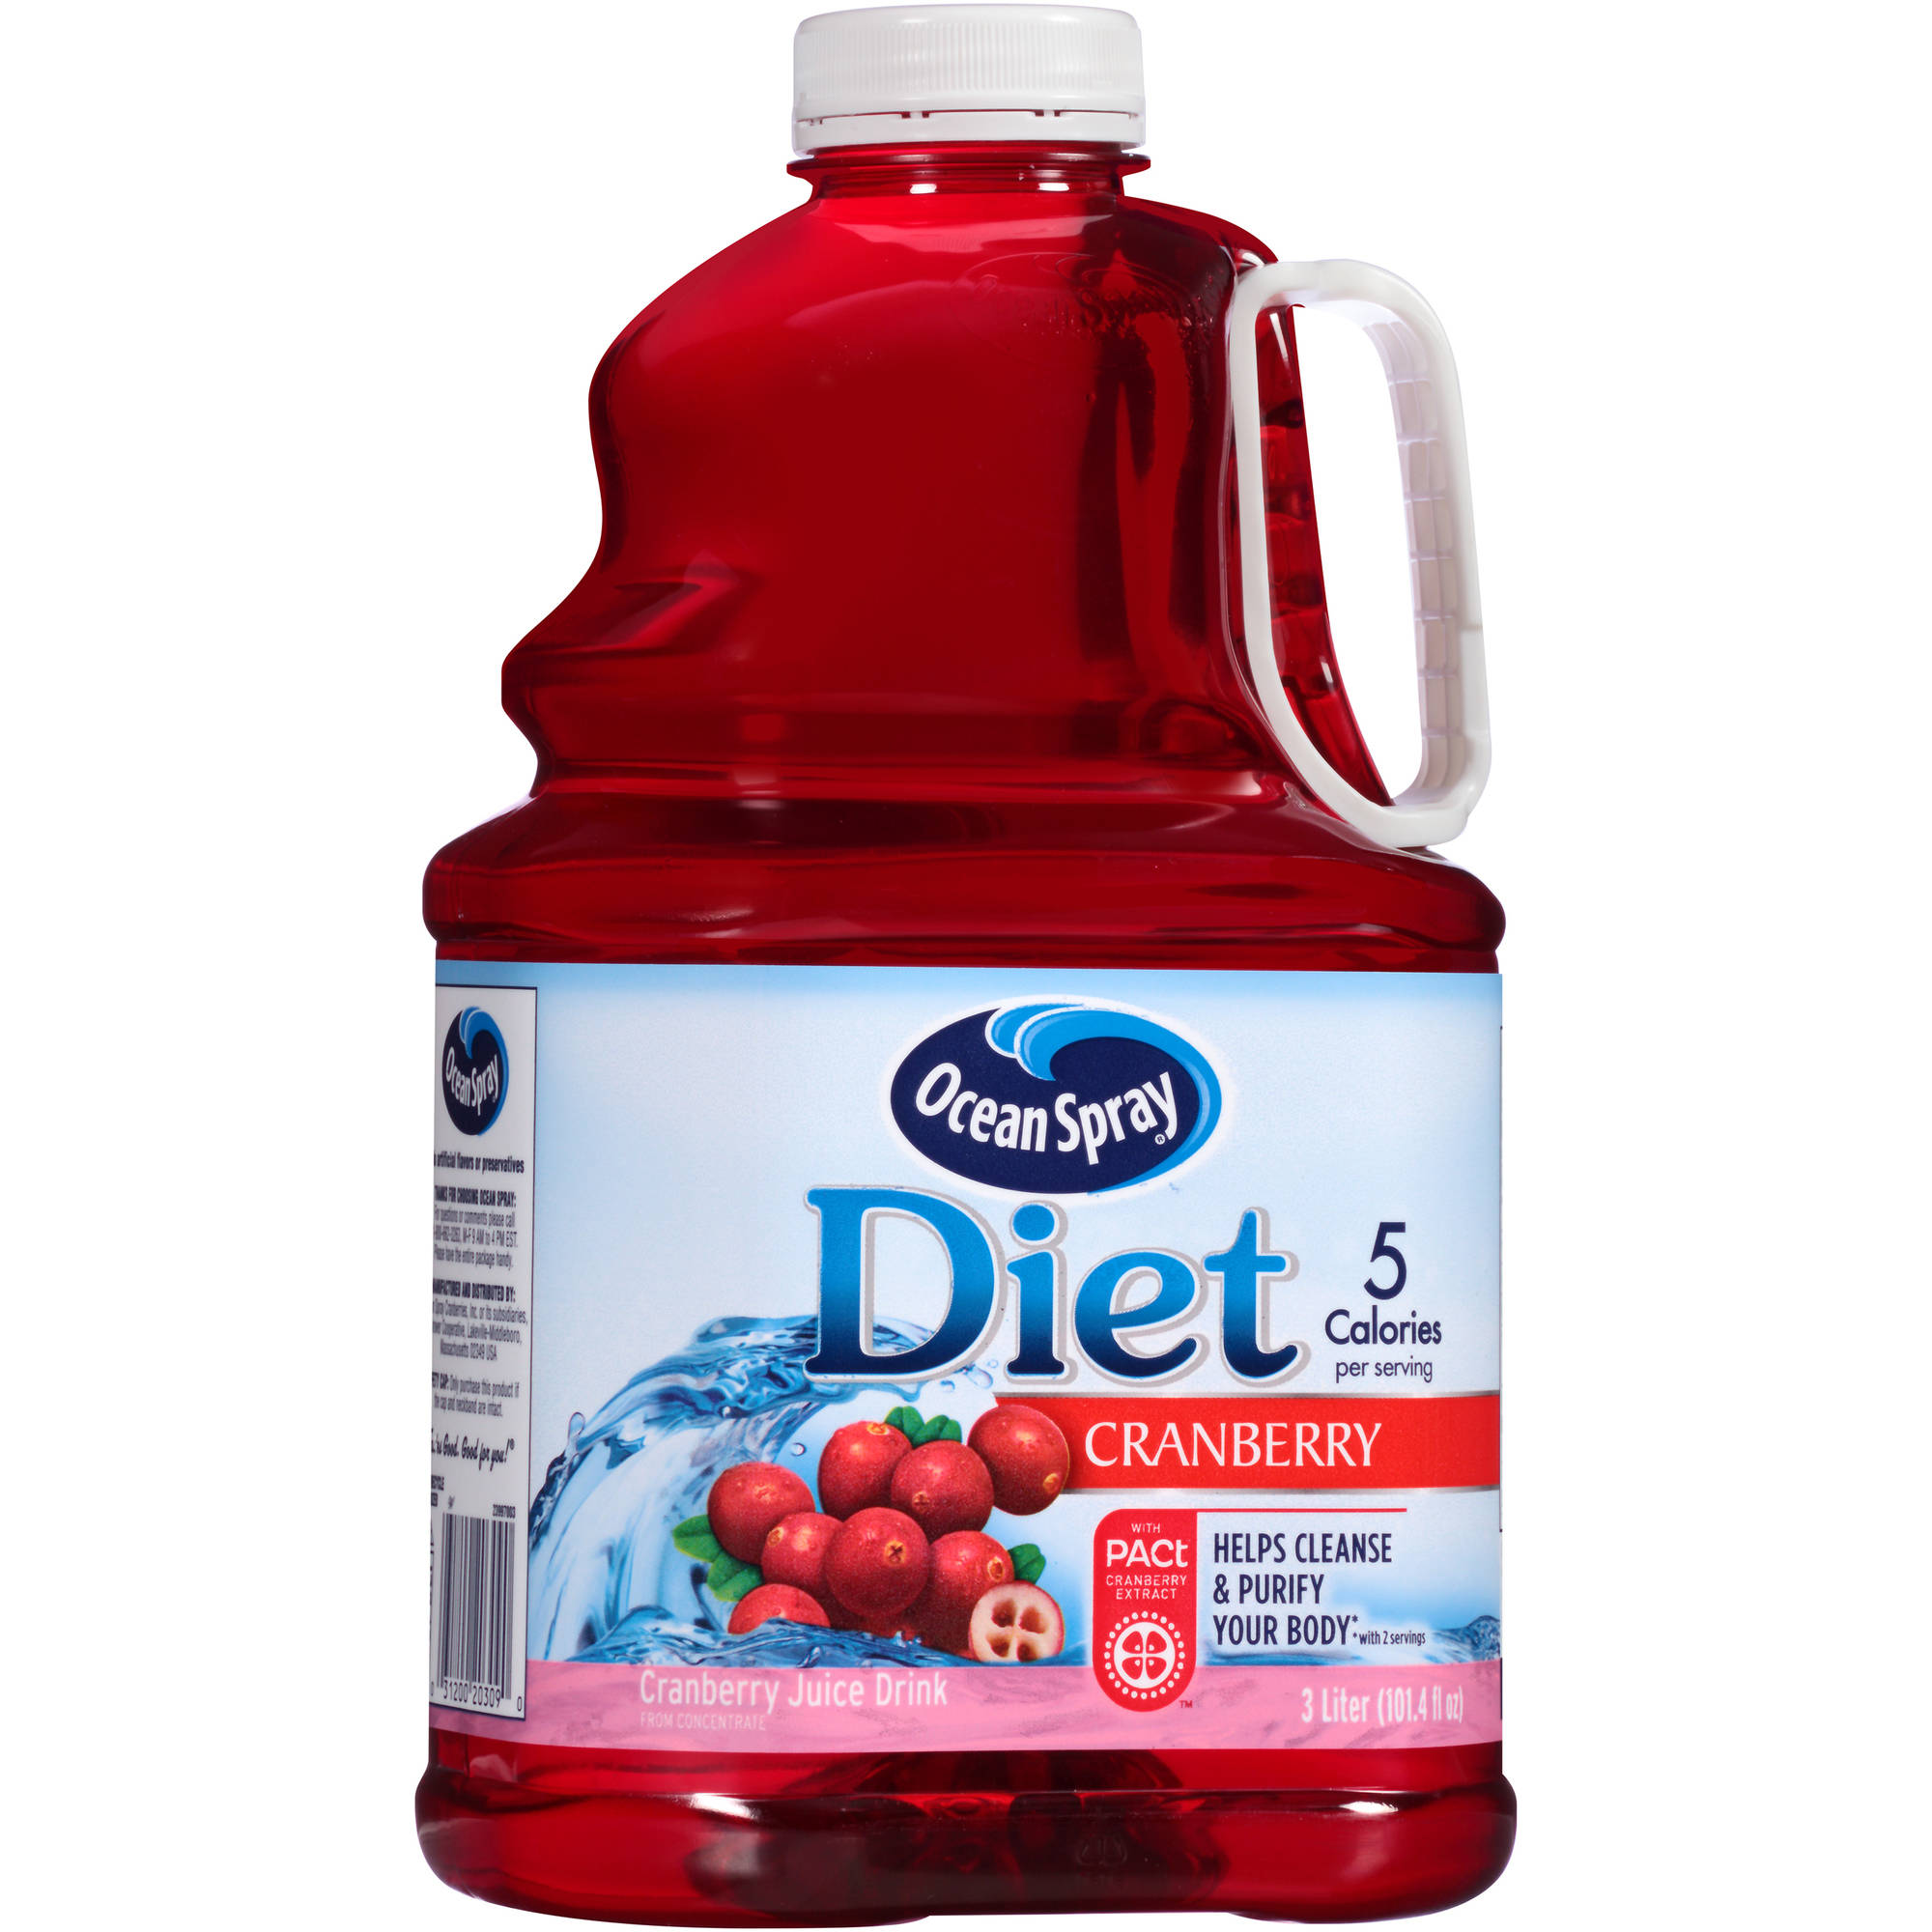 Ocean Spray Diet Cranberry Juice, 3 Liters